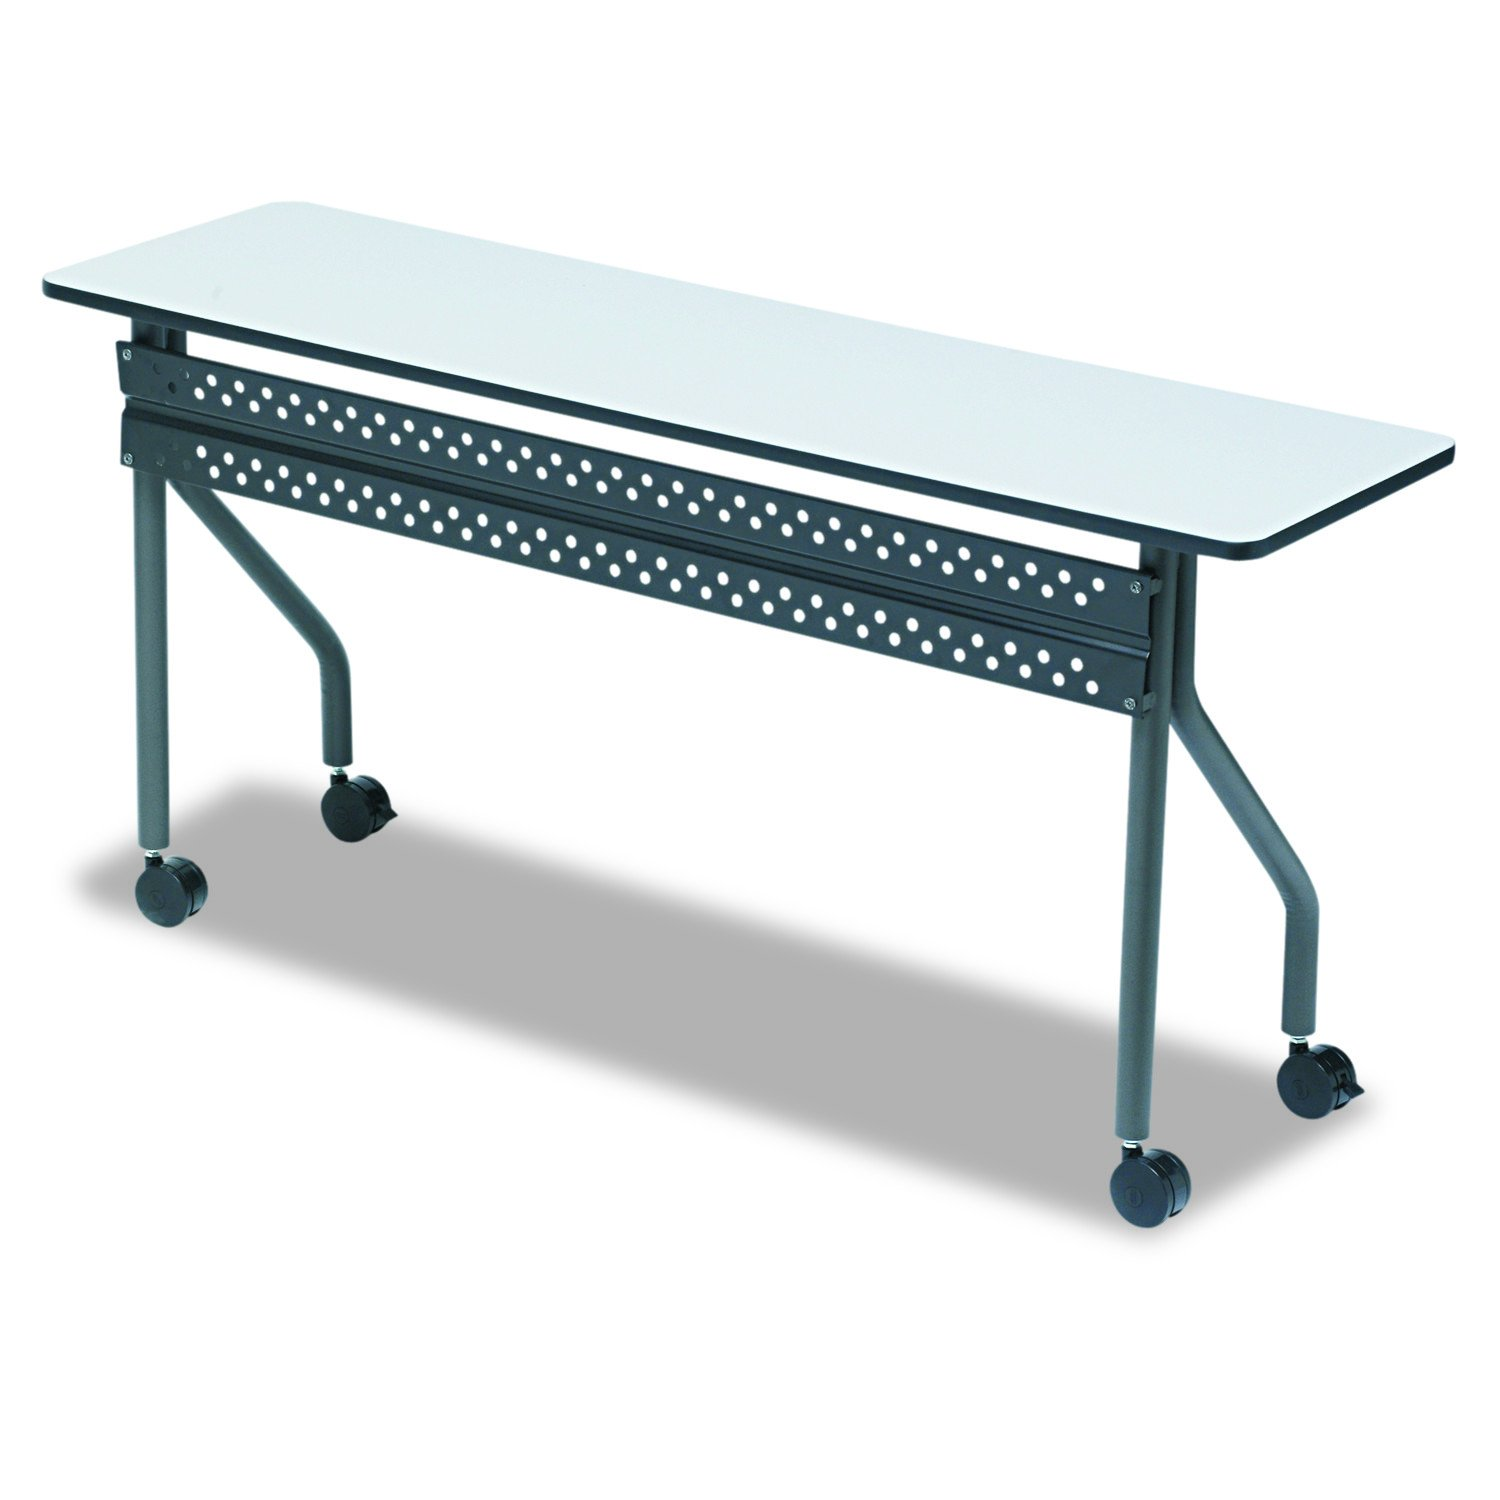 Iceberg ICE68057 OfficeWorks Mobile Training Table with Charcoal Legs, Melamine Laminate, 60'' Length x 18'' Width x 29'' Height, Gray by Iceberg